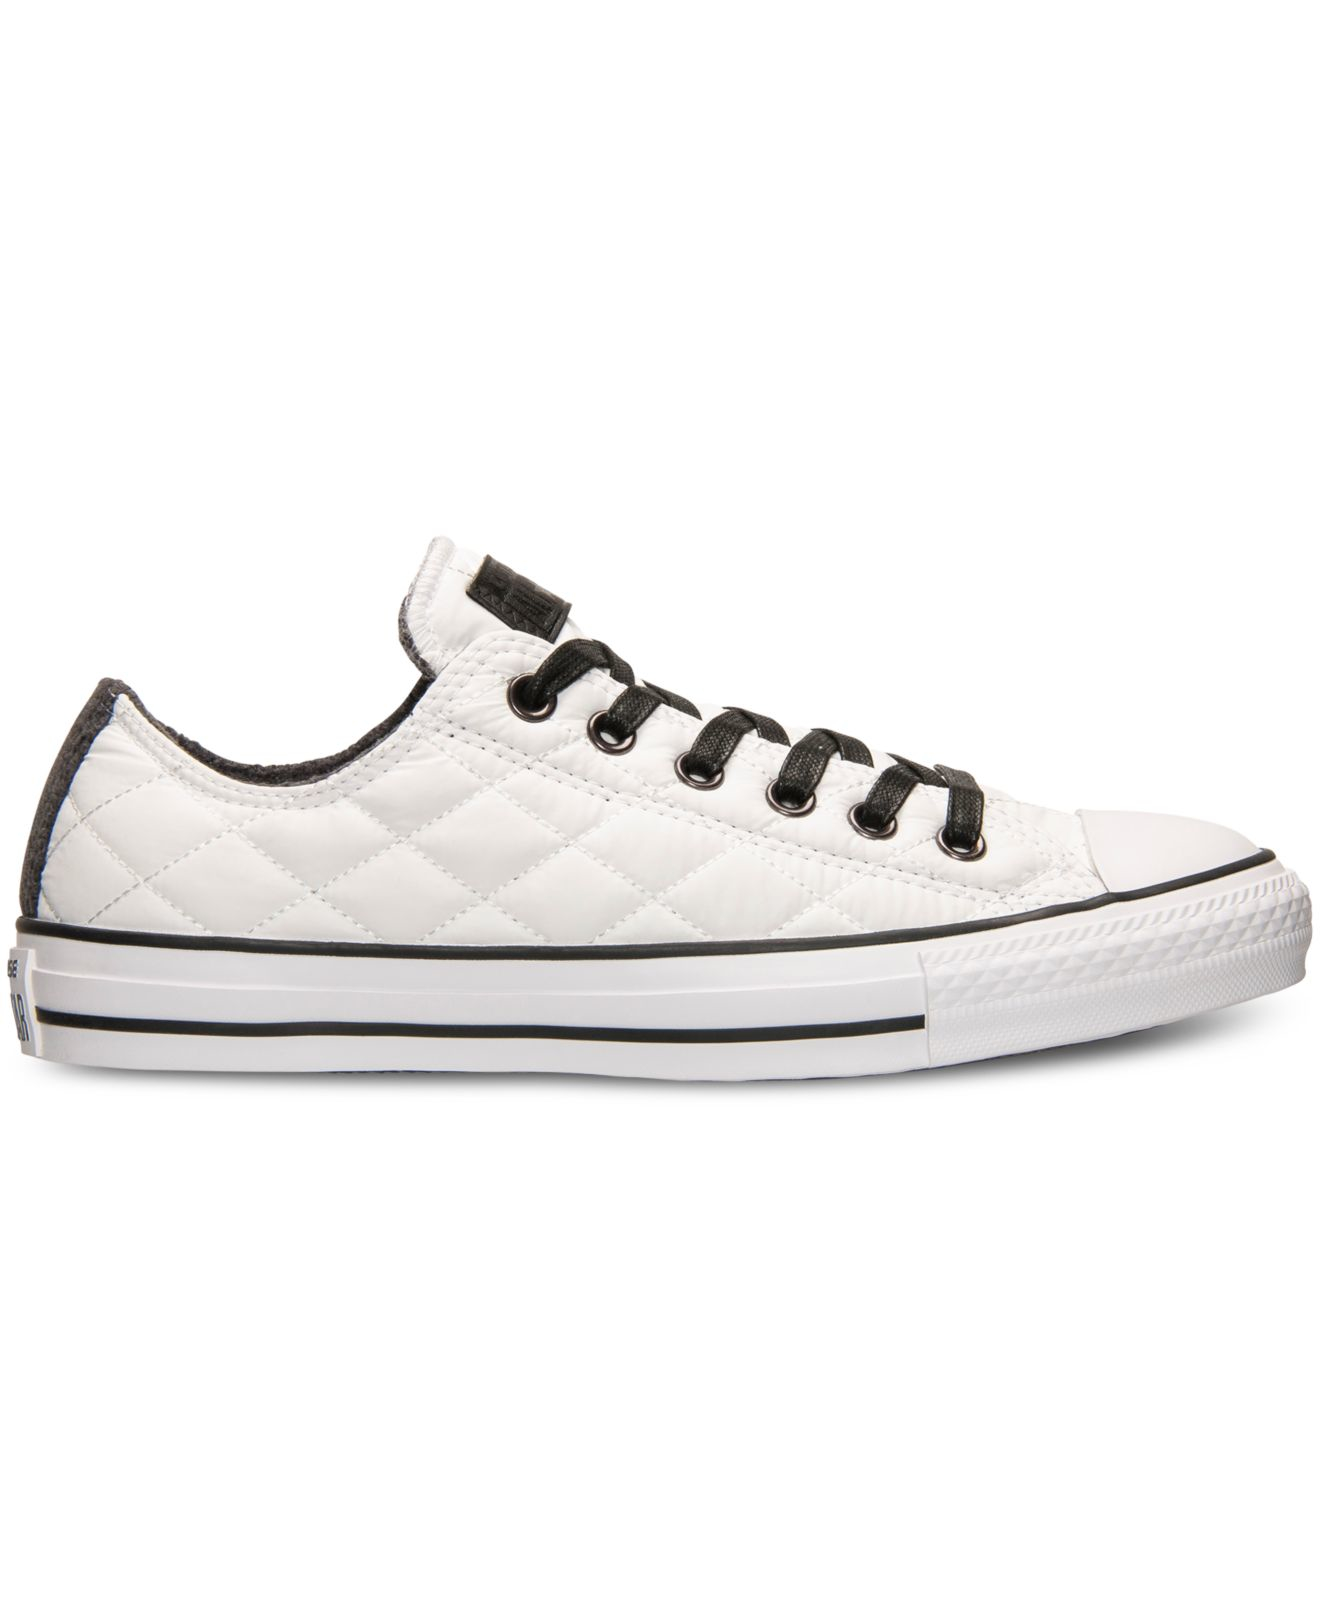 top quilted white p high lrg quality quilt shoes all converse star casual chuck grey mens taylor